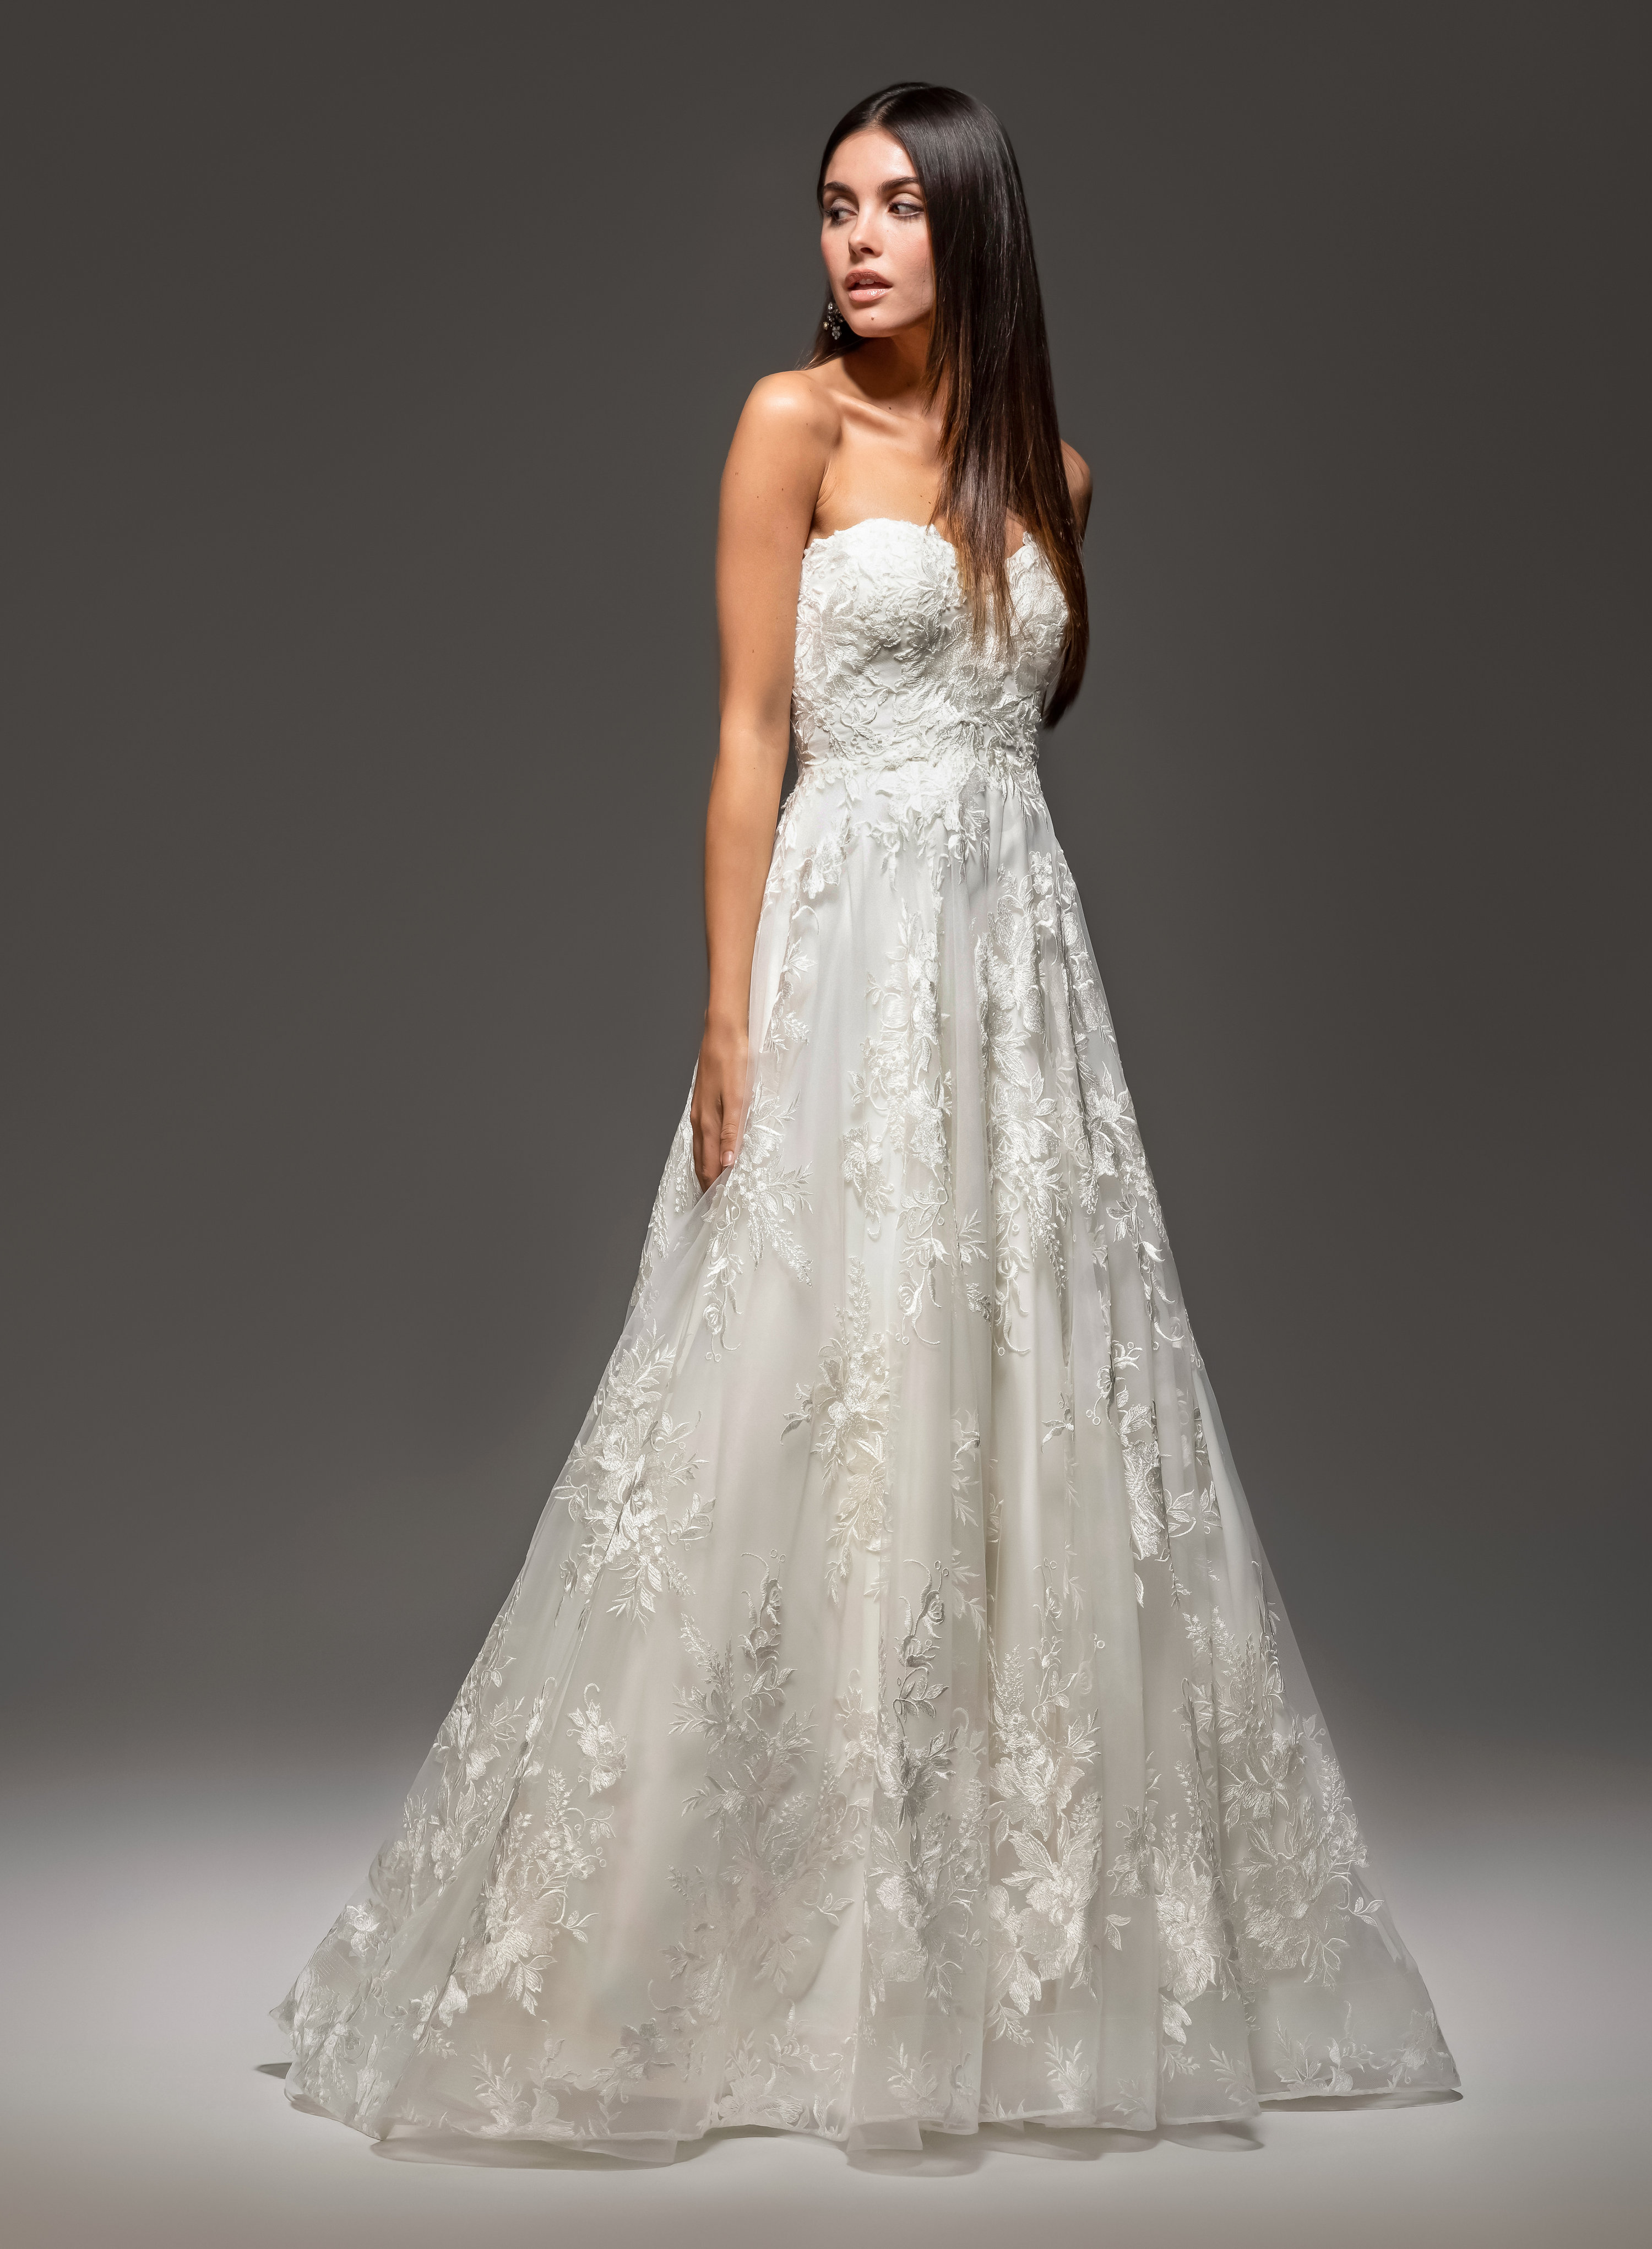 Ivory Alencon lace ball gown, strapless sweetheart neckline, natural waist, chapel train.